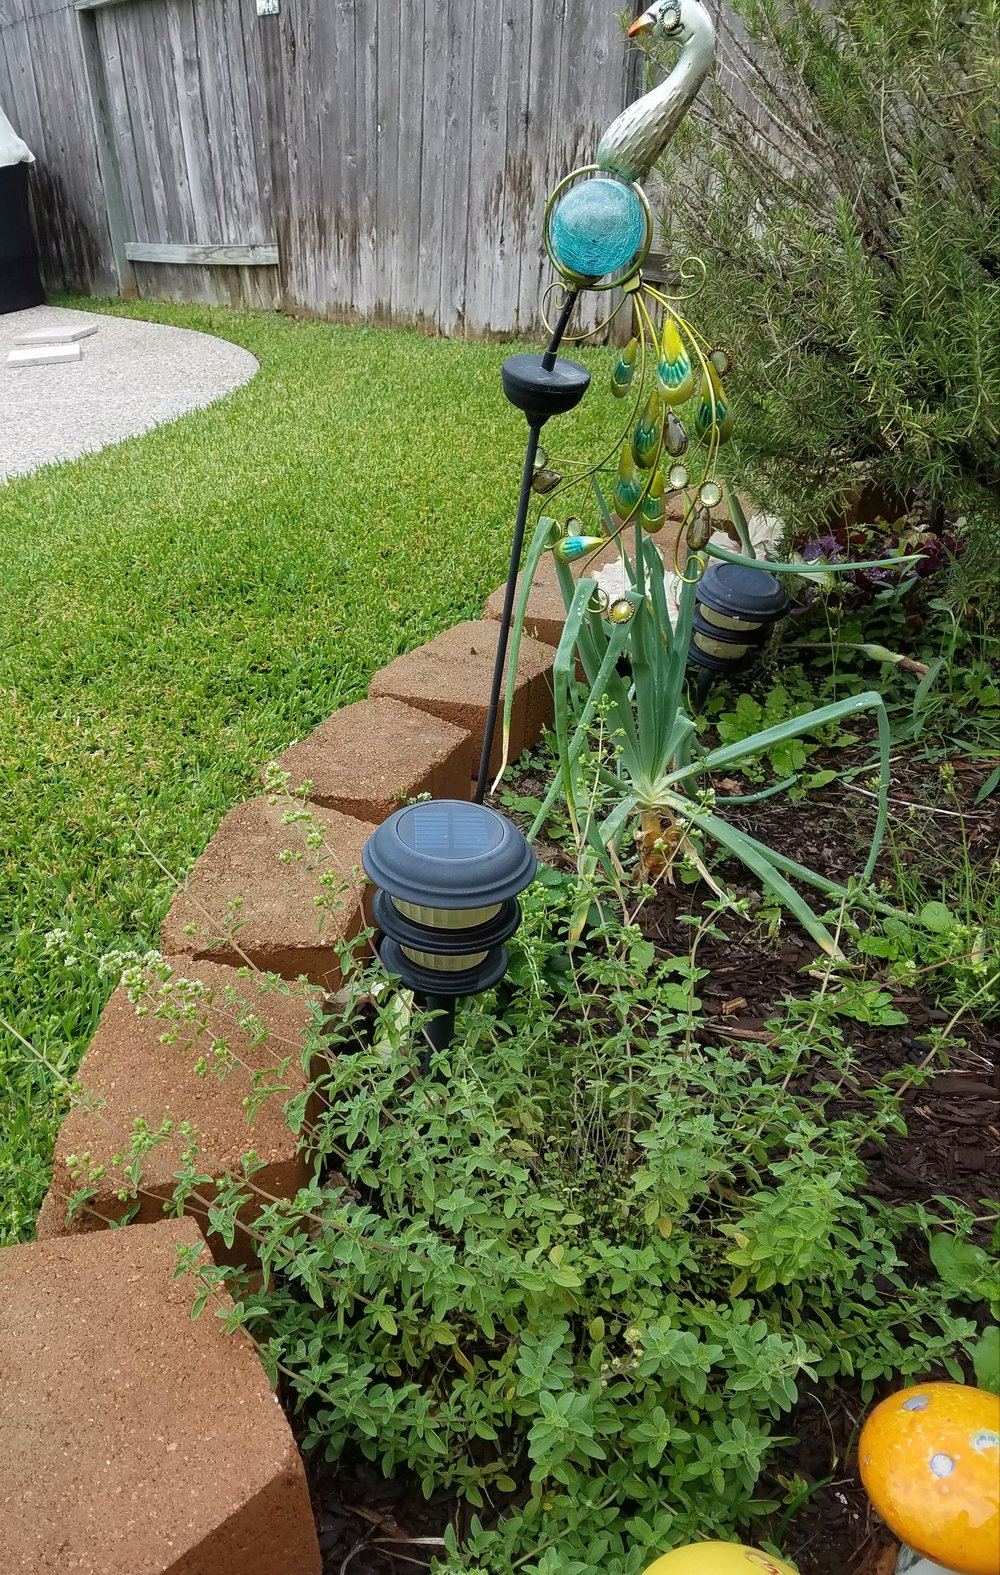 Mama Yardful's raised garden beds - plants from top to bottom: rosemary, onion, strawberry, oregano